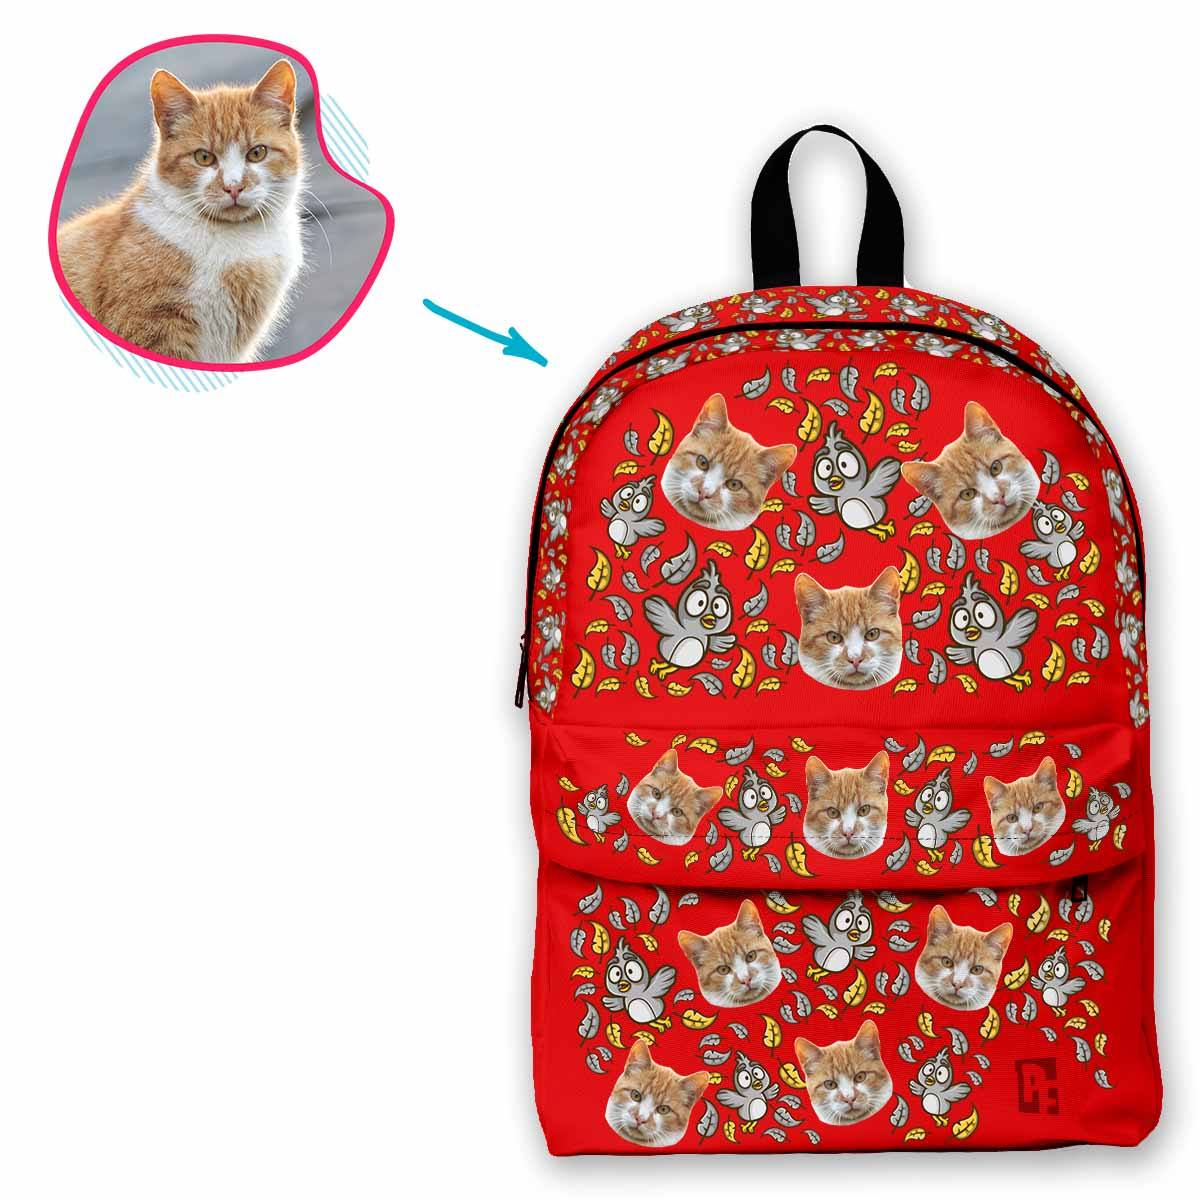 red Bird classic backpack personalized with photo of face printed on it